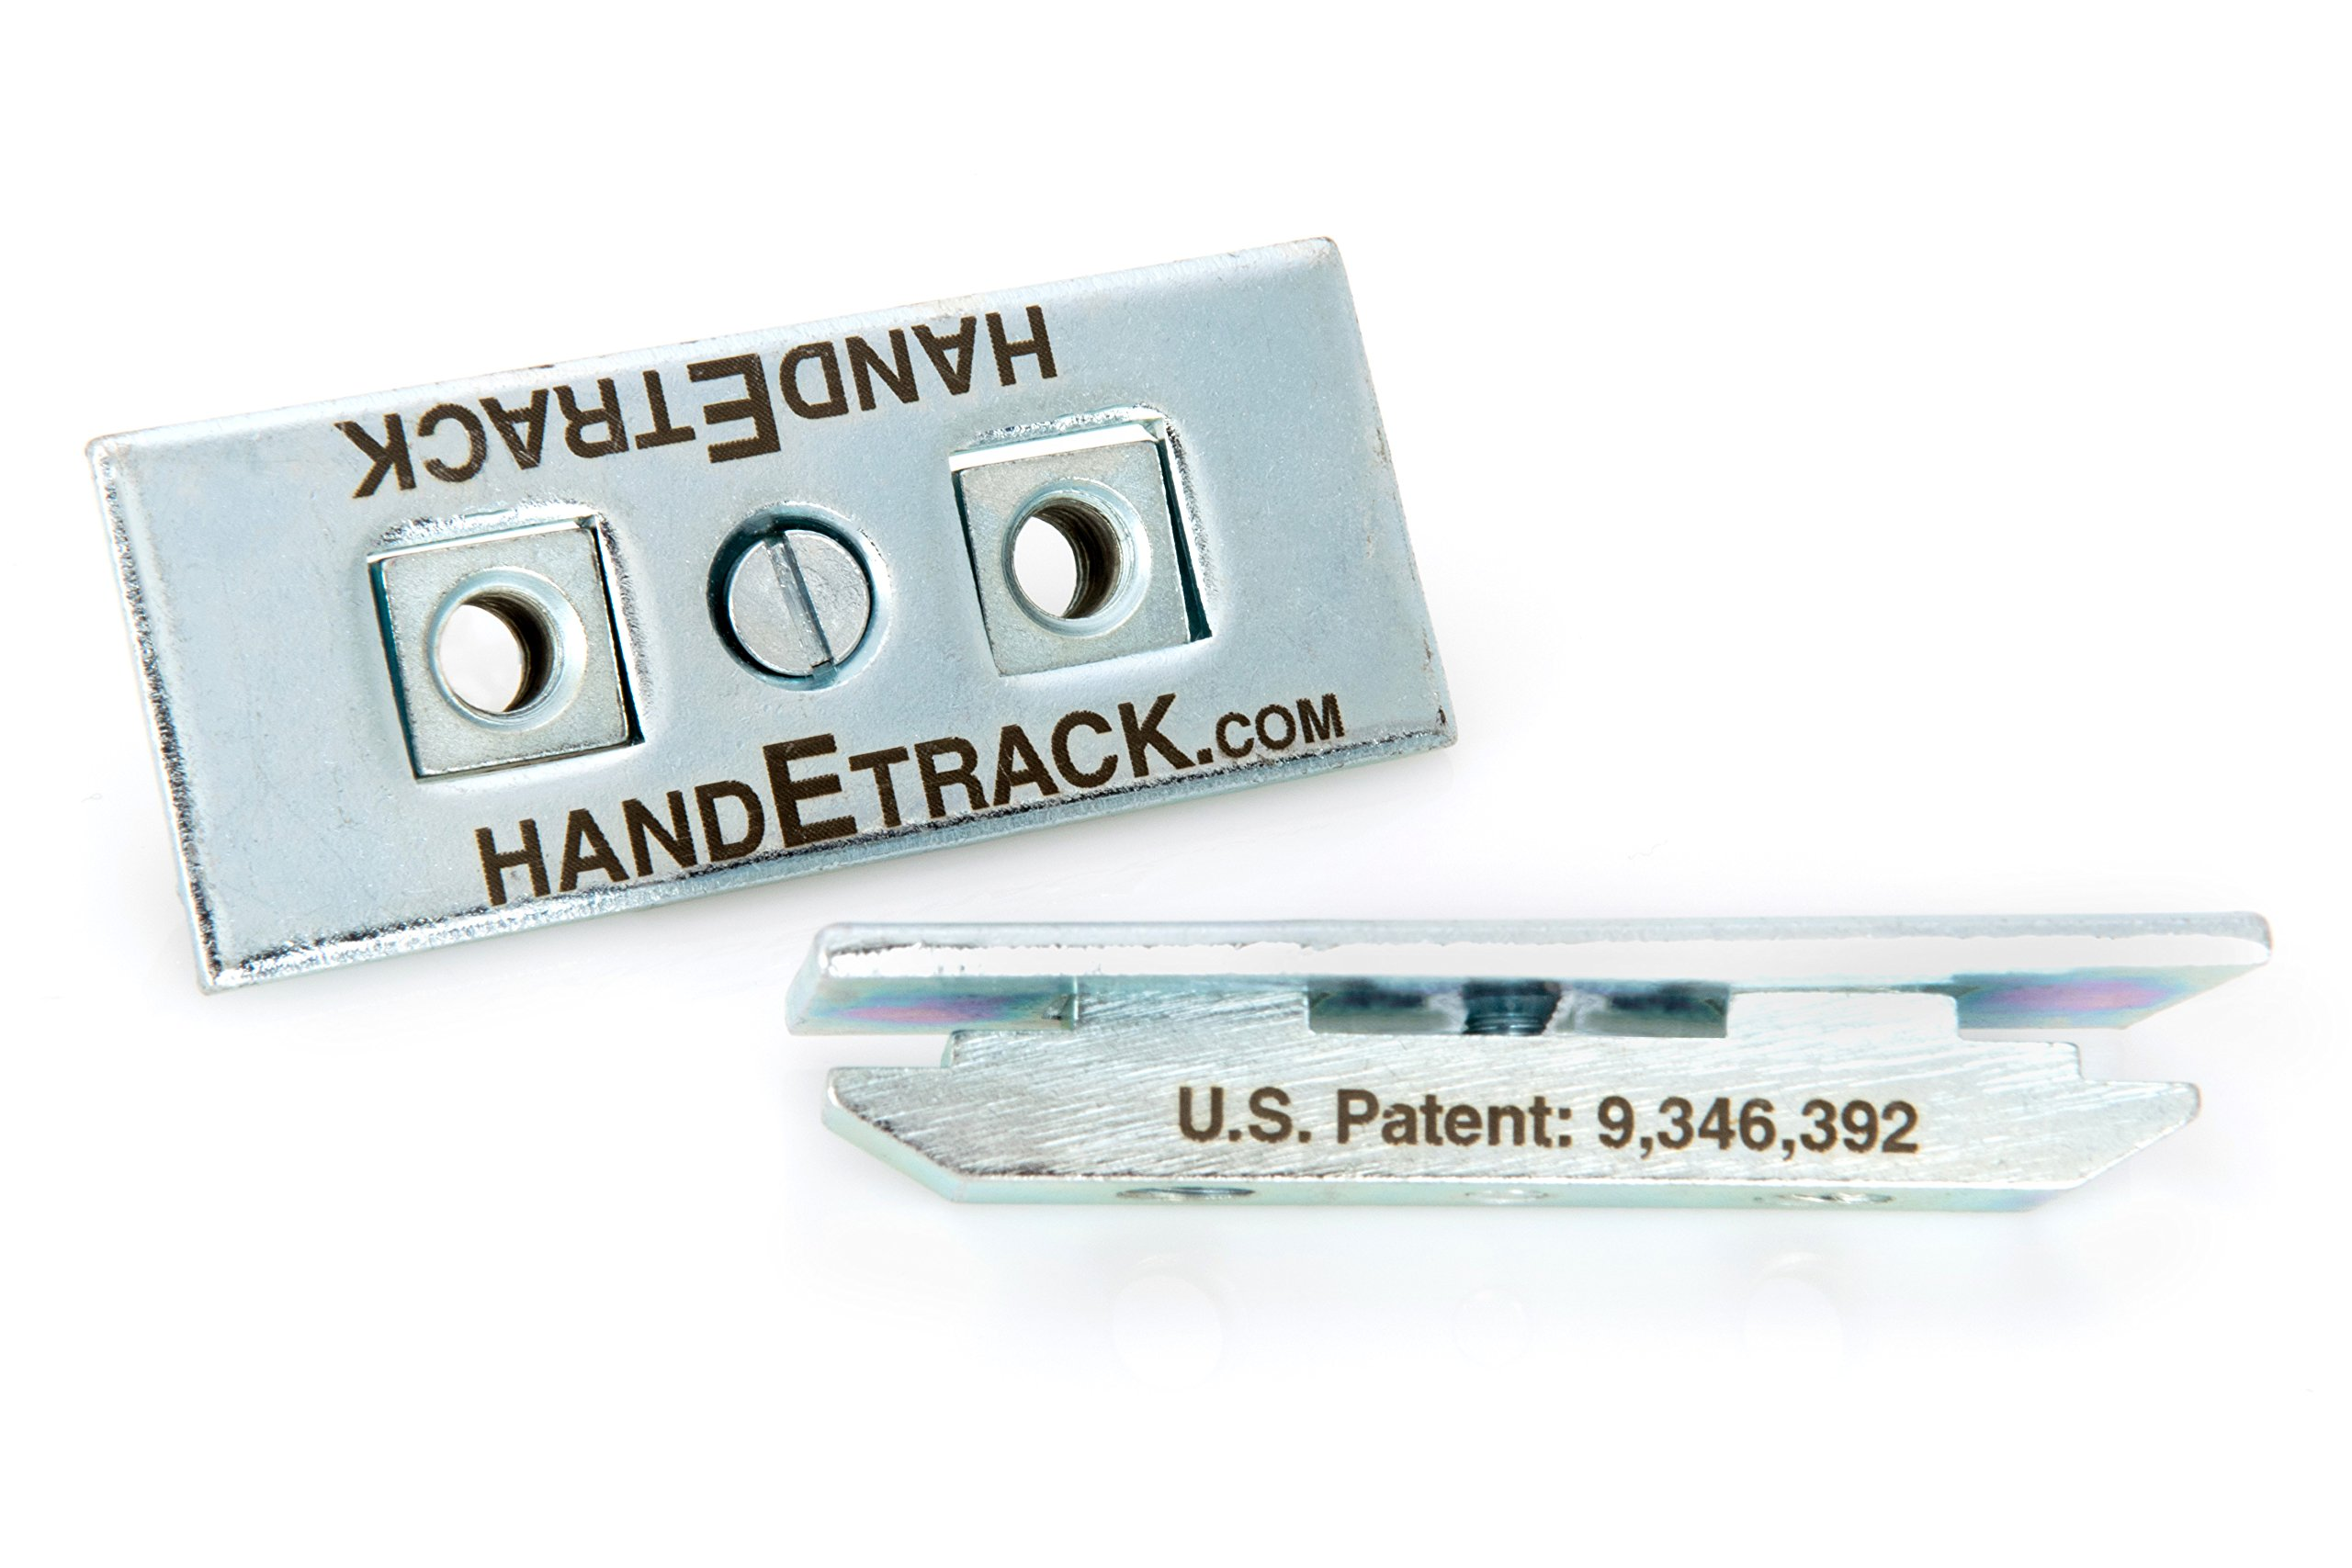 HandETrack Anchor for E-track or A-track, 5/16-18, Pack of 10